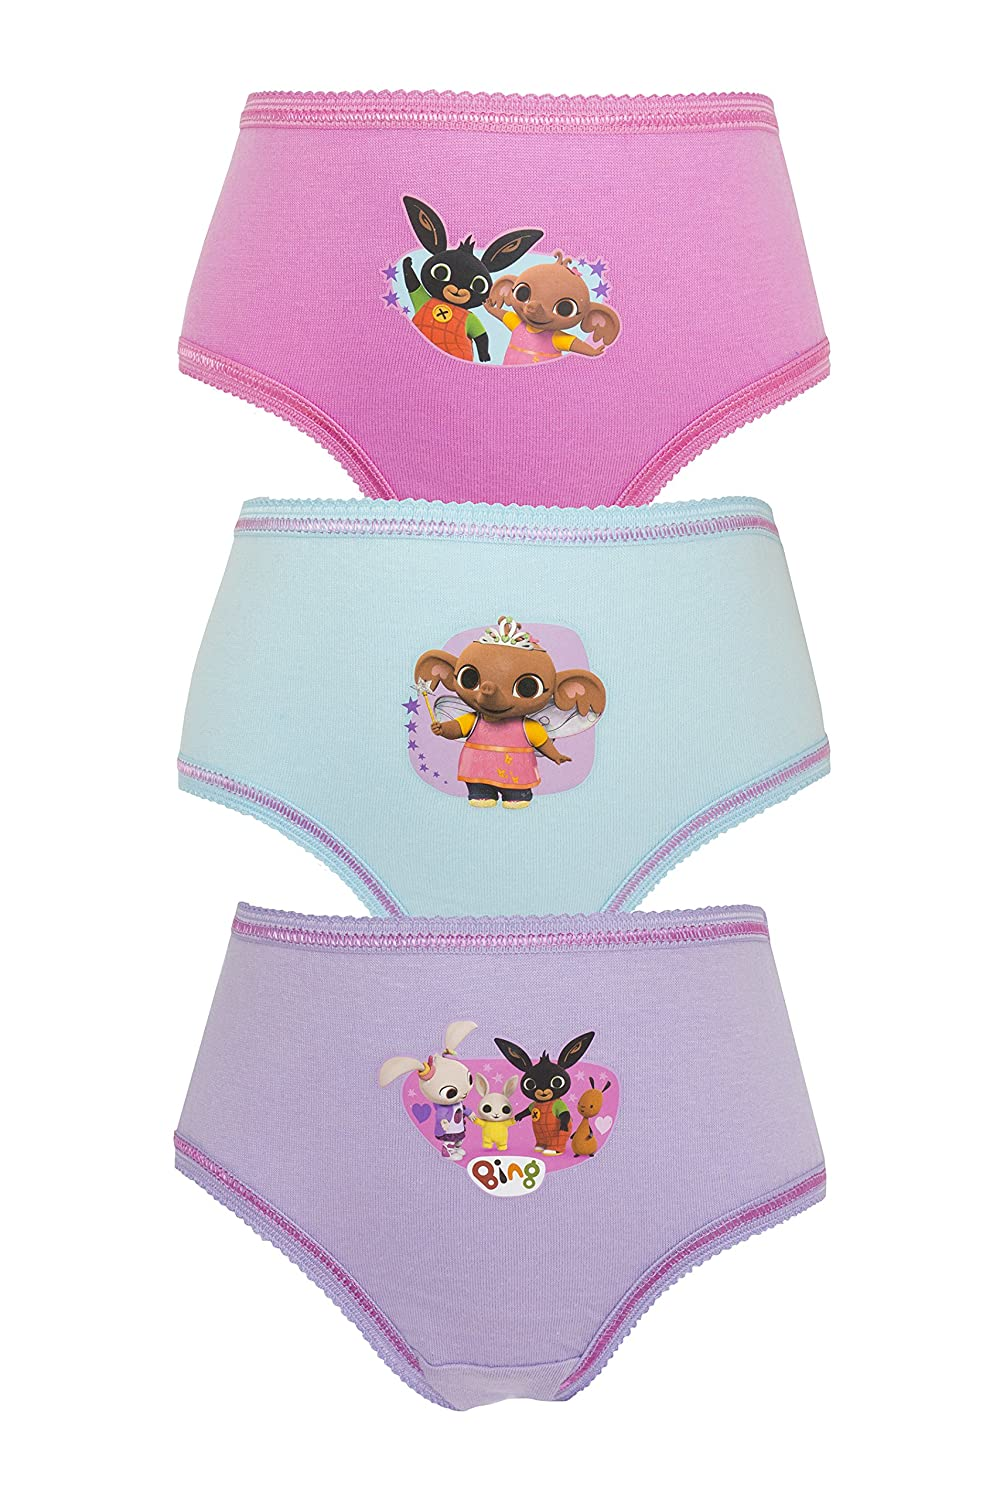 Cartoon Character Products CBeebies Bing Girls Pants/Knickers 18 Months - 5 Years